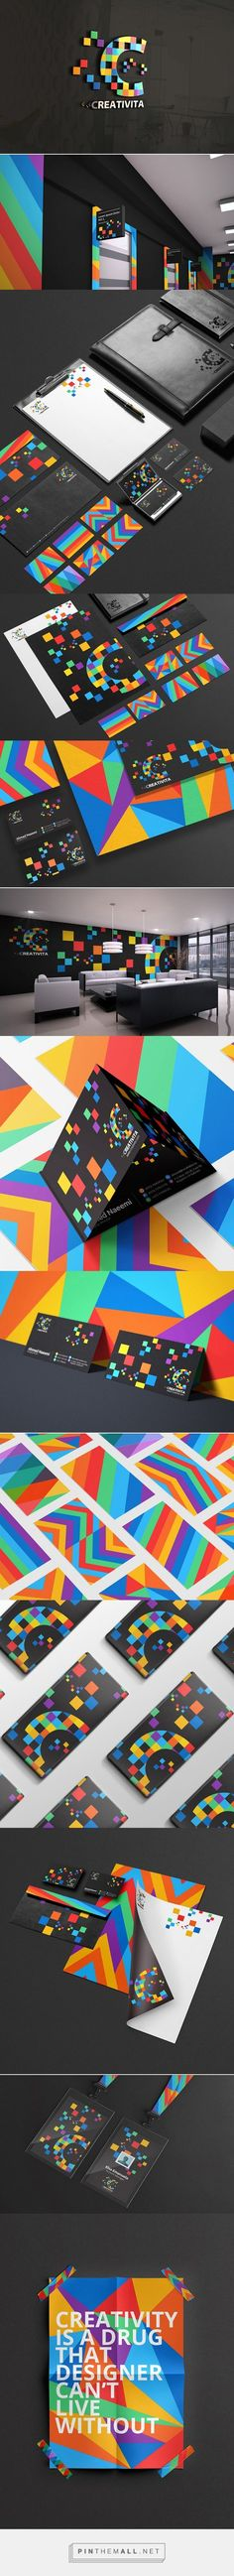 Creativita Branding on Behance | Fivestar Branding – Design and Branding Agency & Inspiration Gallery